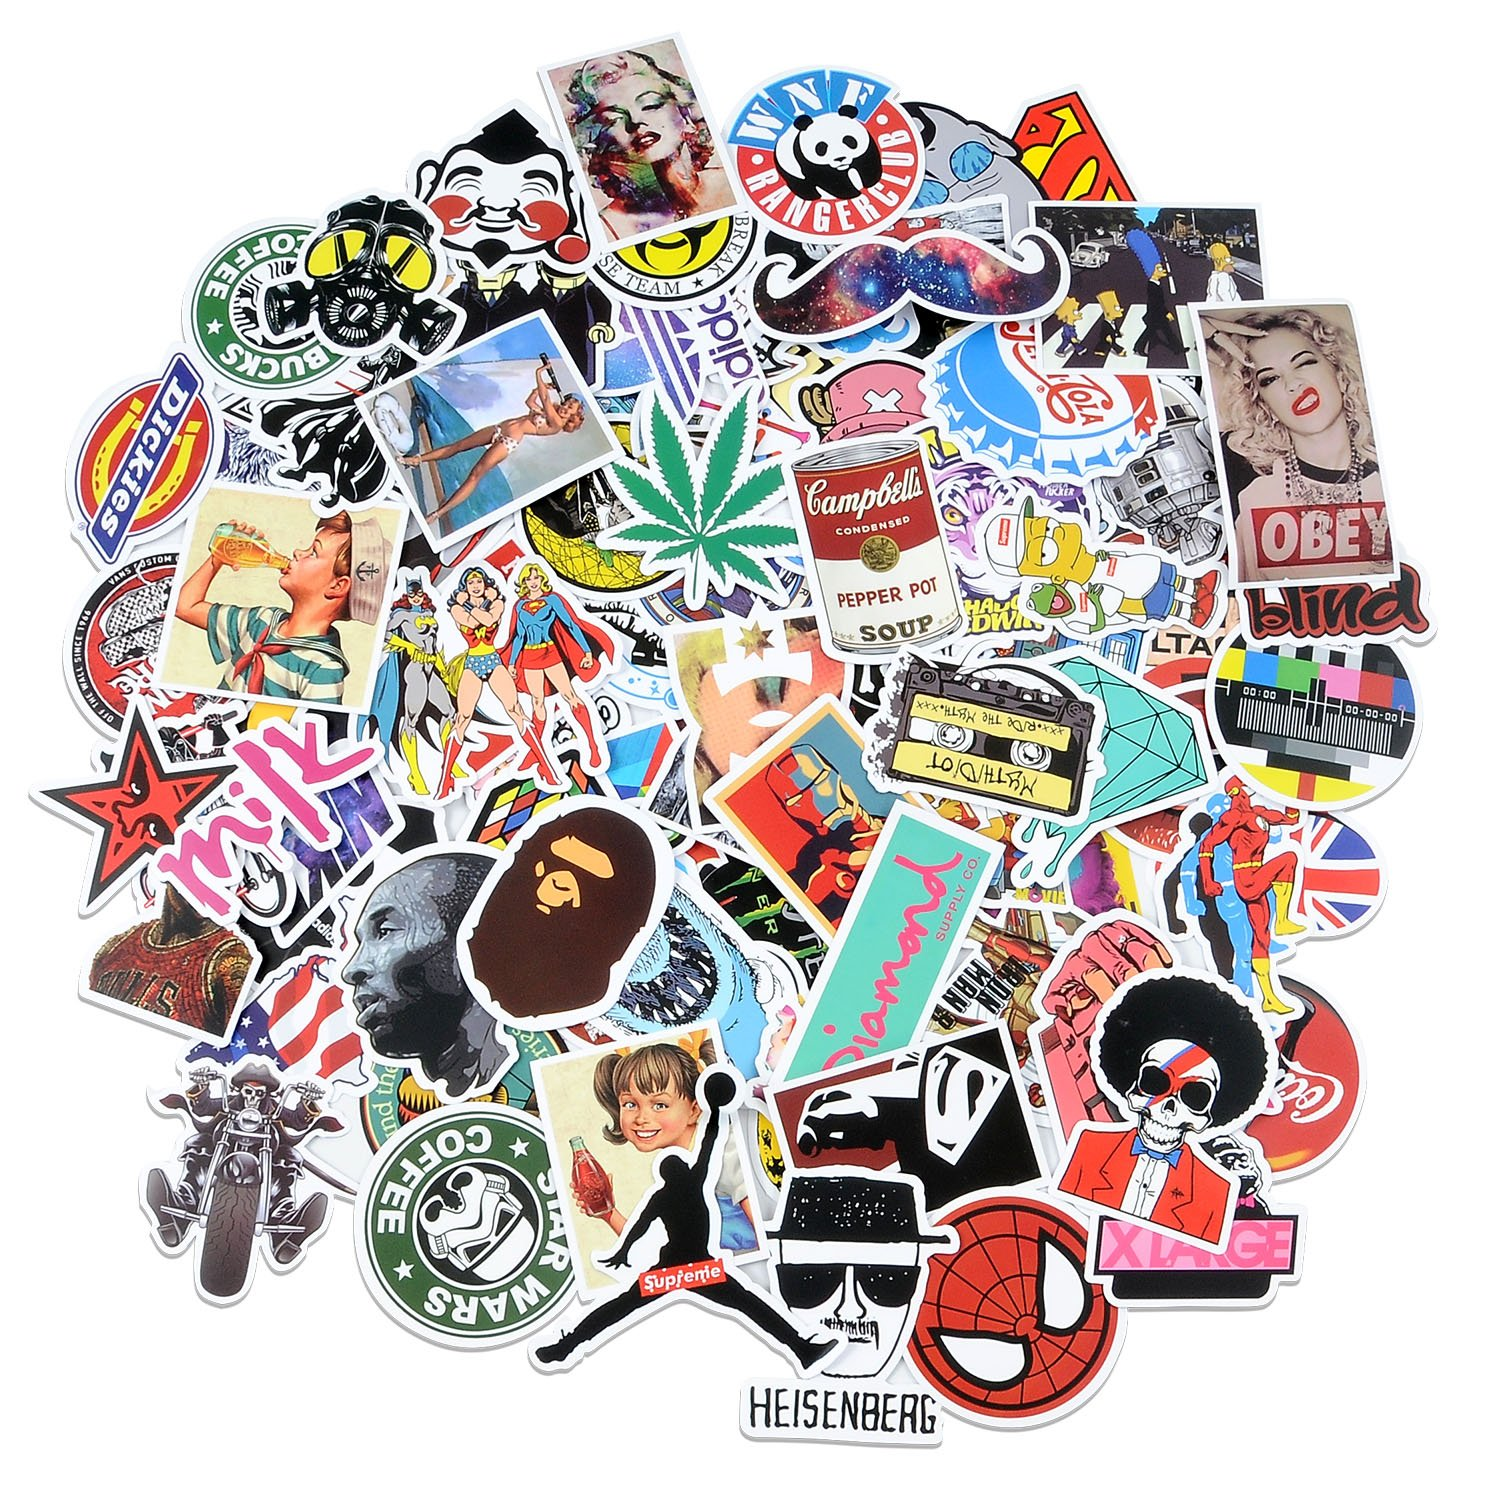 Bike stickers design discover - Amazon Com Laptop Stickers 100 Pcs Bezgar Car Stickers Motorcycle Bicycle Luggage Decal Graffiti Patches Skateboard Stickers For Laptop Random Sticker